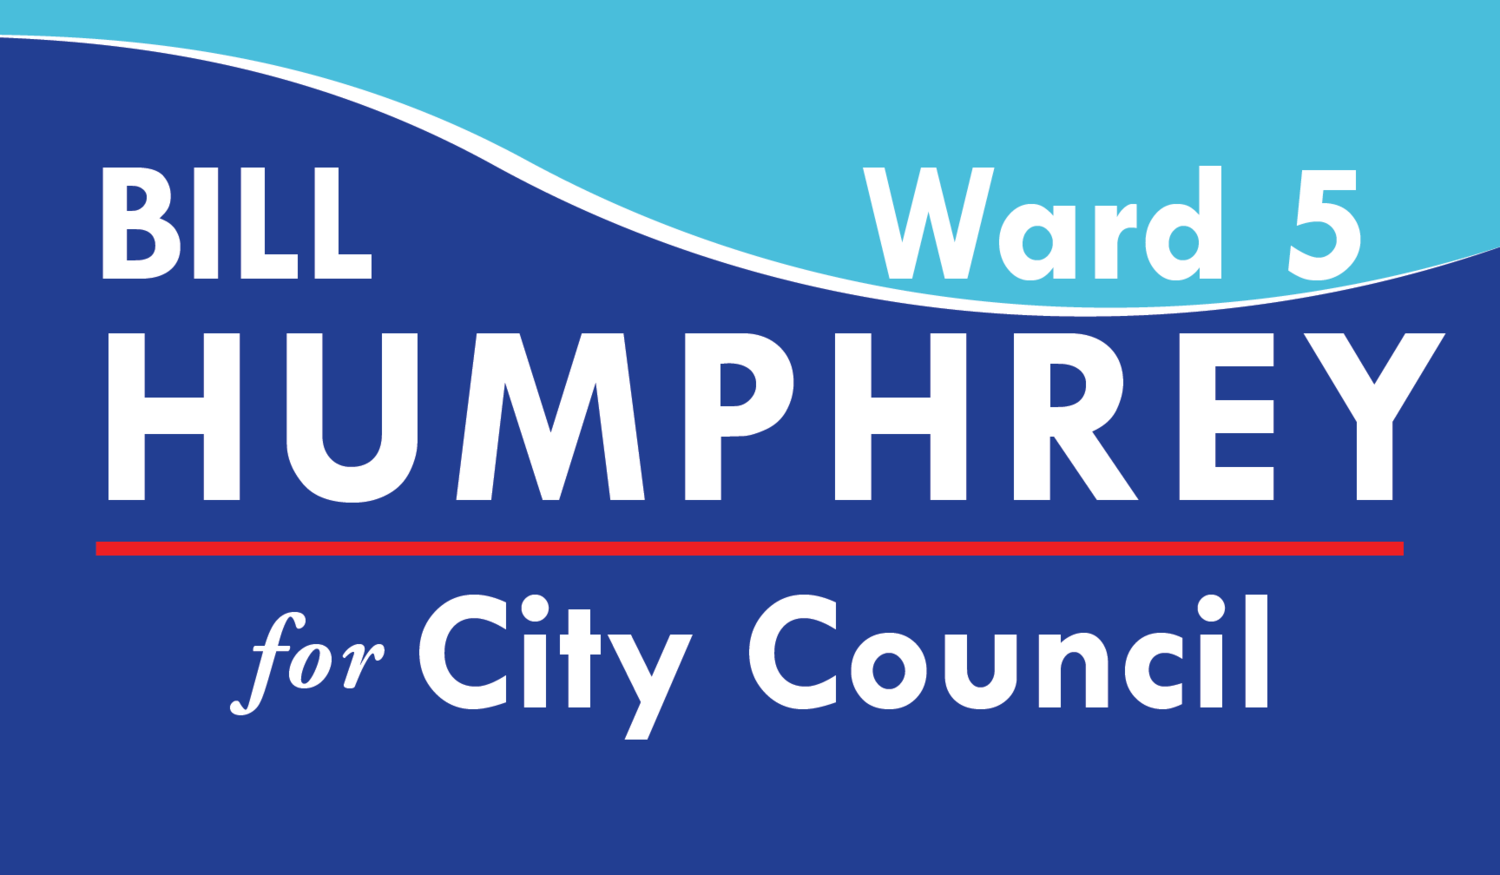 Bill Humphrey for Ward 5 Newton